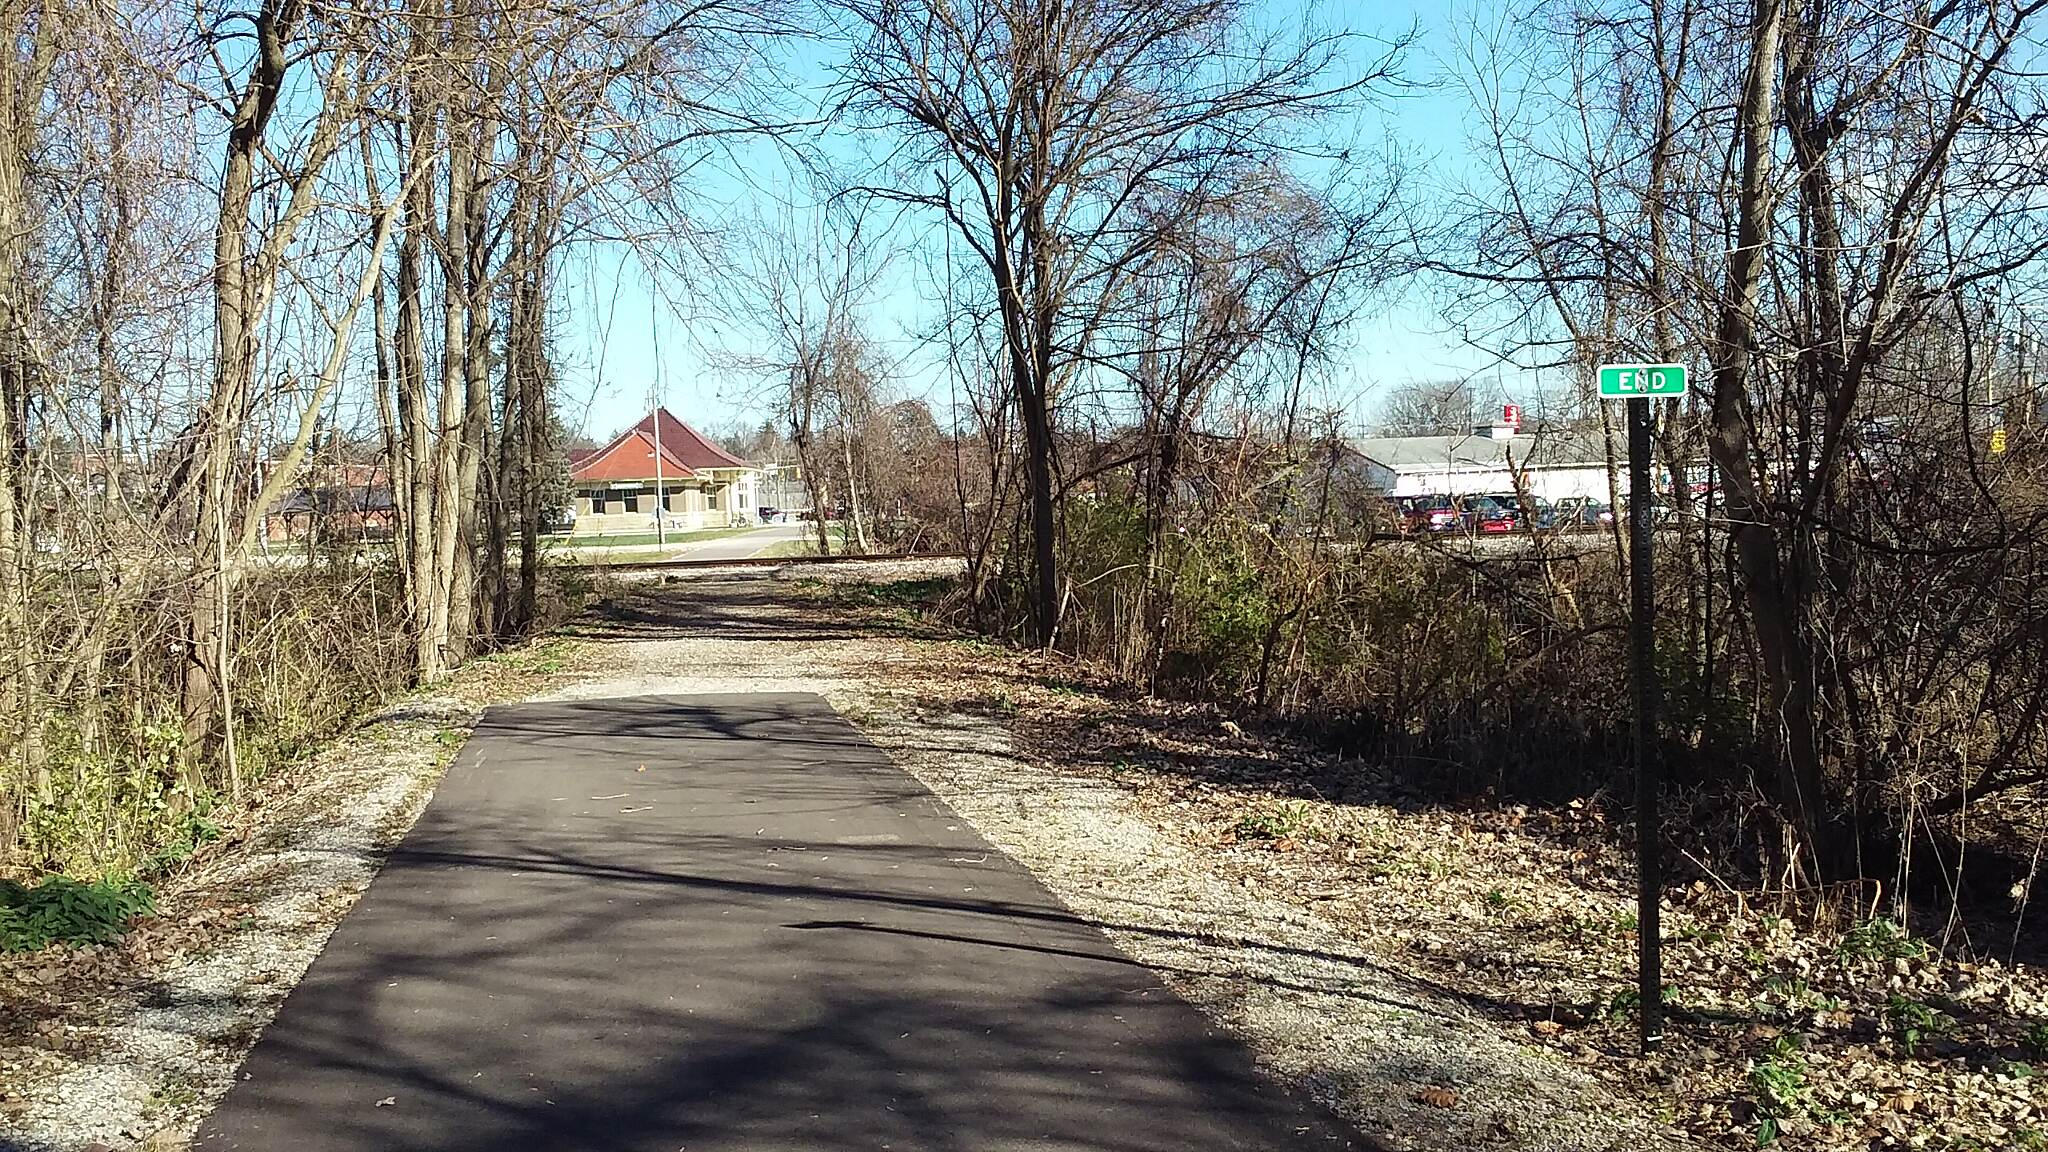 Heart of Ohio Trail Northbound November 2015 North terminus of Heart of Ohio Trail, Mt. Vernon depot and downtown Mt. Vernon are visible across active railroad track